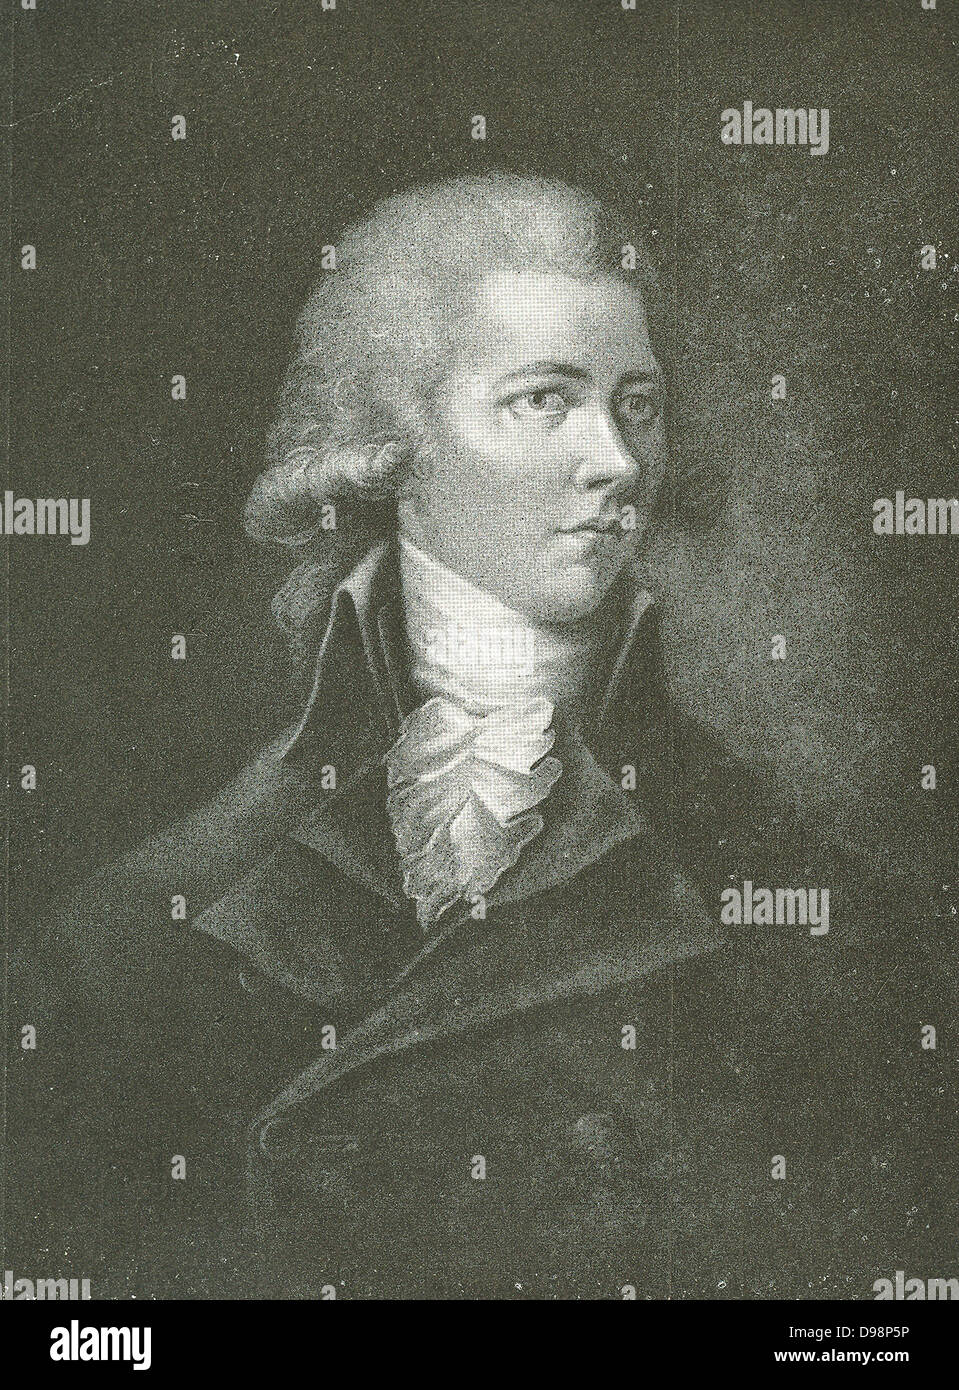 William Pitt the Younger (28 May 1759 – 23 January 1806) was a British politician of the late 18th and early 19th - Stock Image